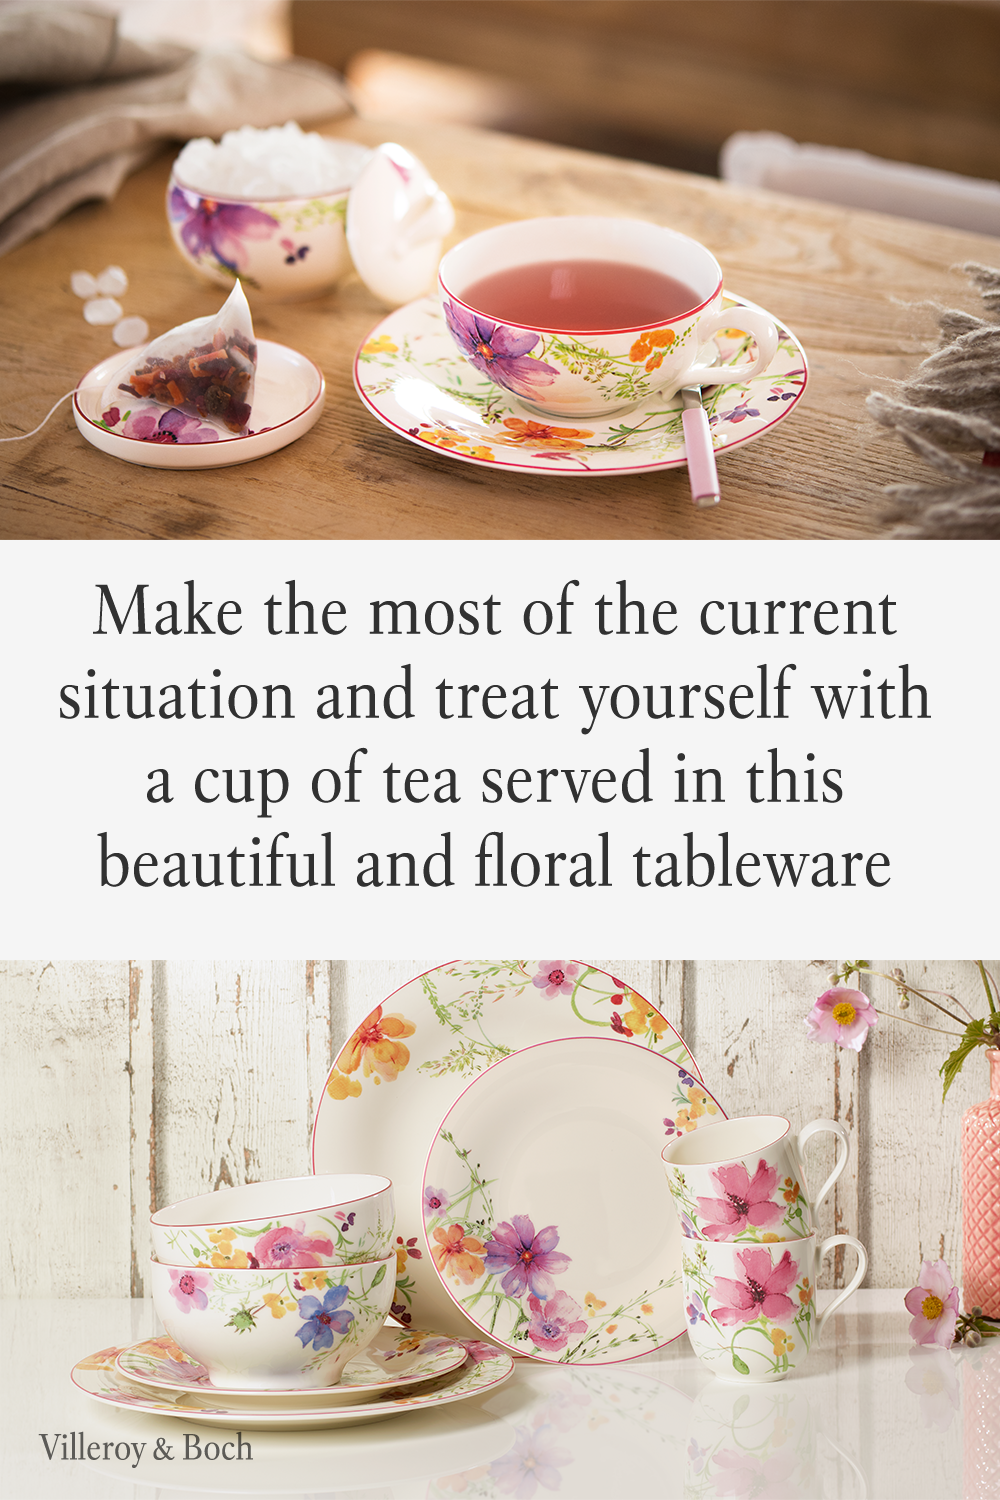 Do you spend at lot of time at home at the moment? How about some self care and me time. Reactivate your yoga skills or go for a meditation. Afterwards, make your favorite tea and let your thought wander around. Collection: Mariefleur. | flower porcelain | floral tableware | tea and coffee | country style | farmhouse decoration| Geschirr | Blumen | lieblich | Landhaus | elegance | Villoery Boch | #mariefleur #flowerlove #selfcare #stayathome #giftsforwomen #tableware